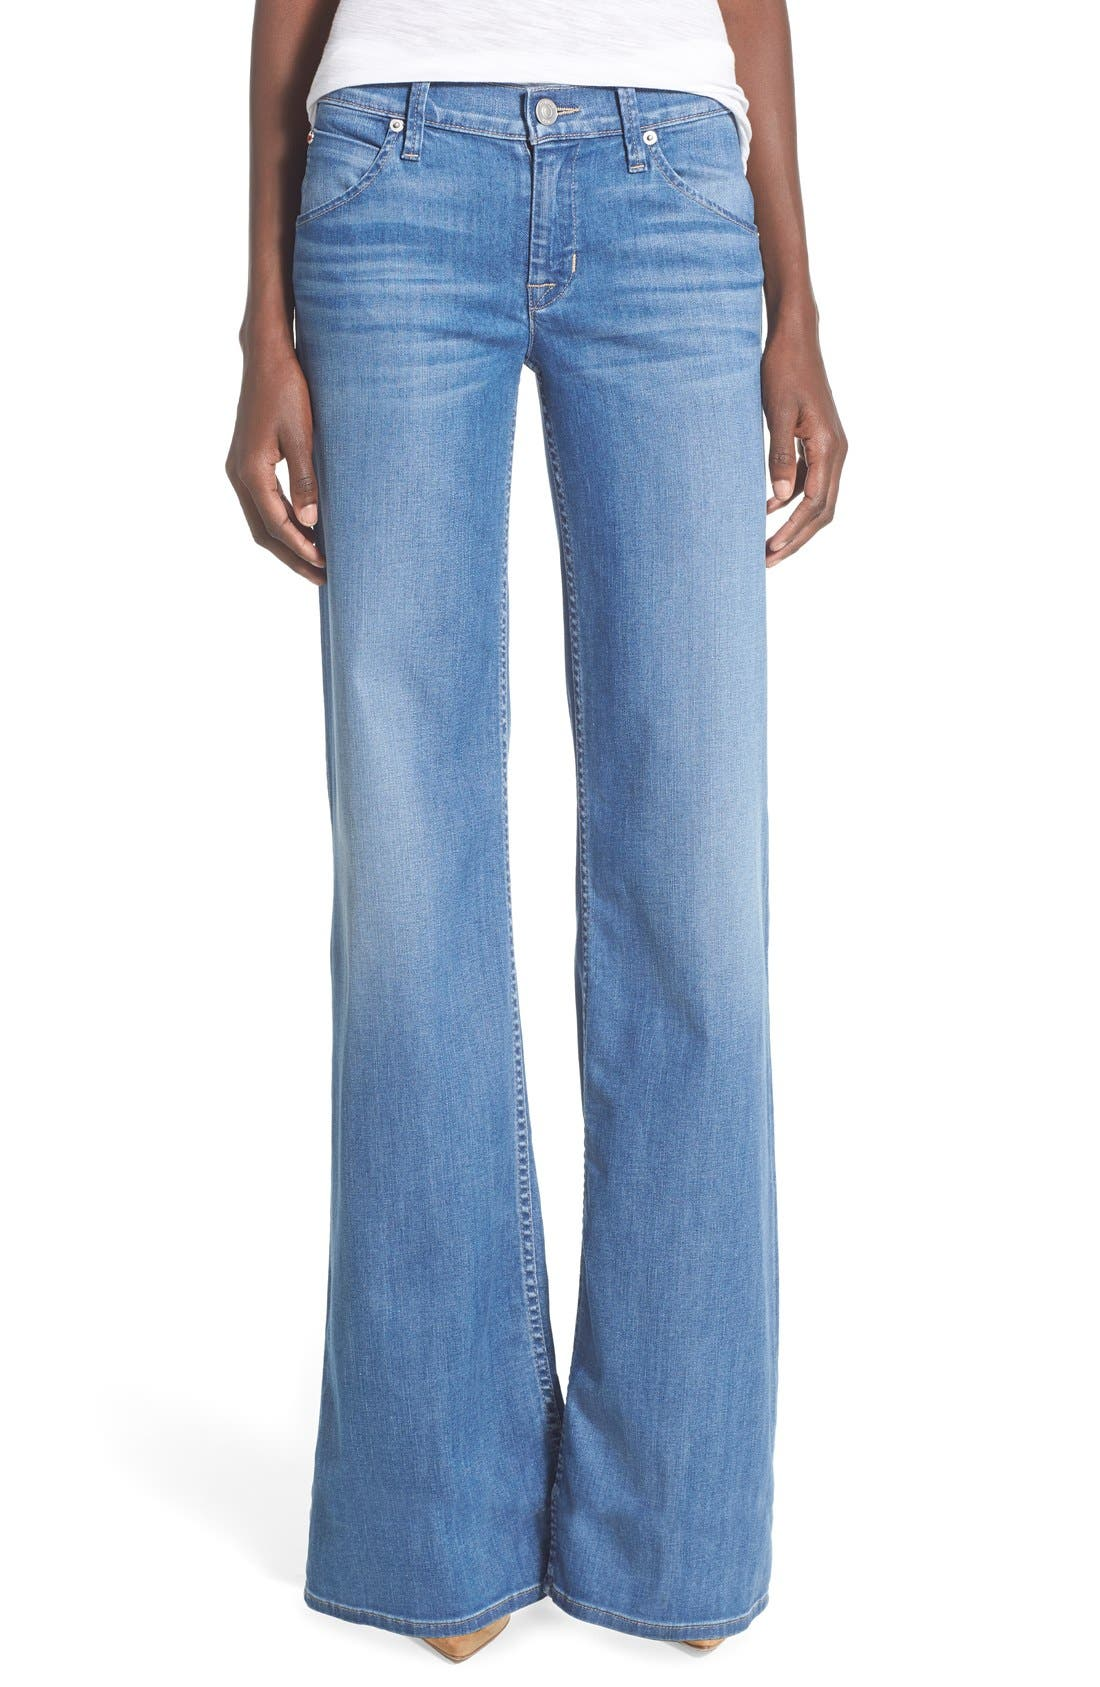 'Brooke' Wide Leg Jeans,                             Main thumbnail 1, color,                             420